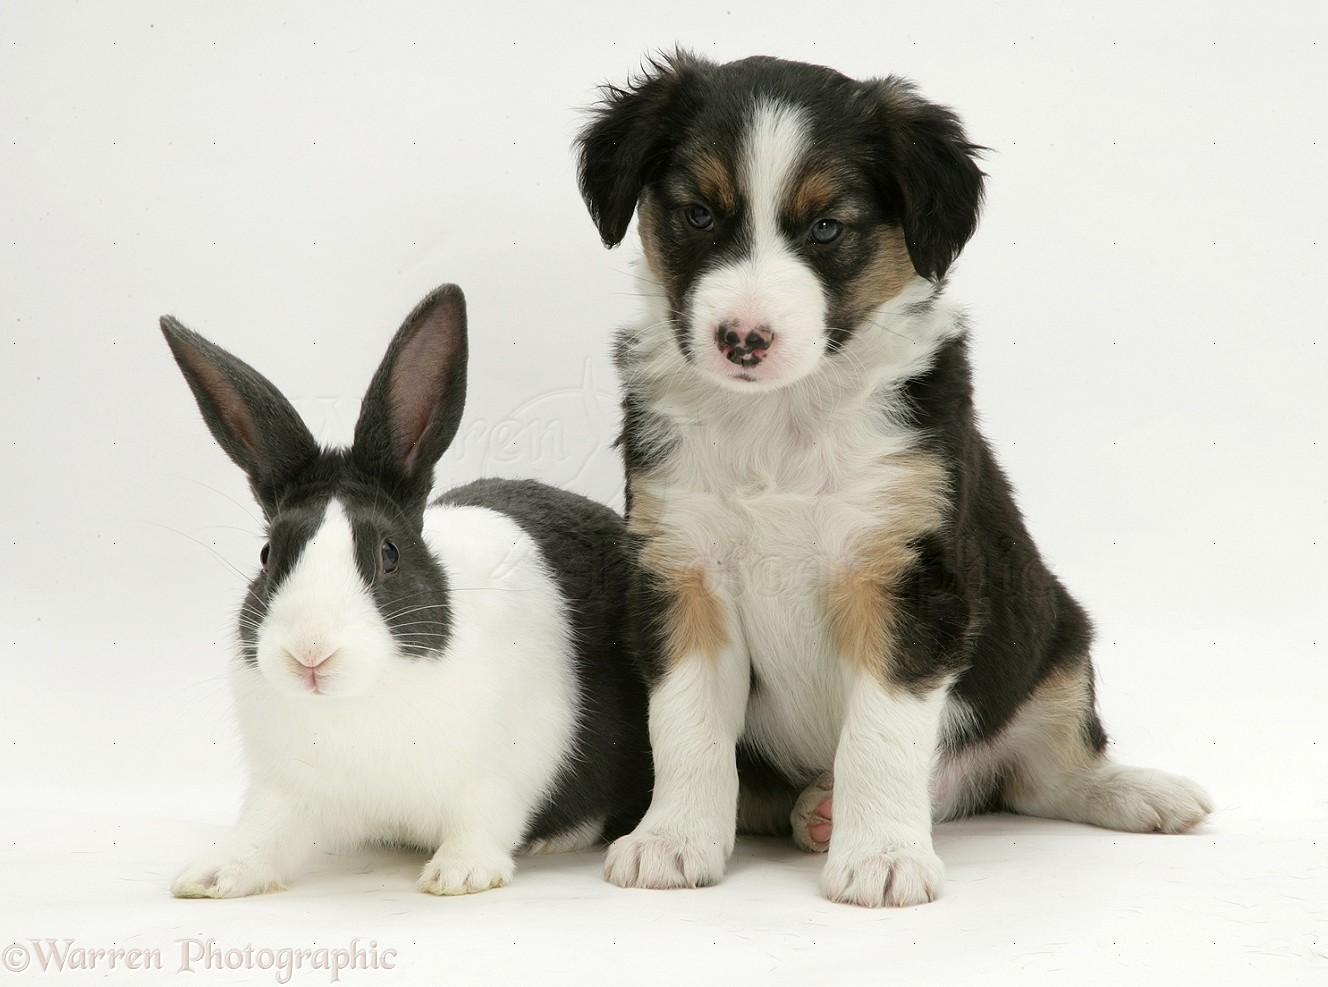 Tricolour Border Collie pup with blue Dutch rabbit photo - WP13173